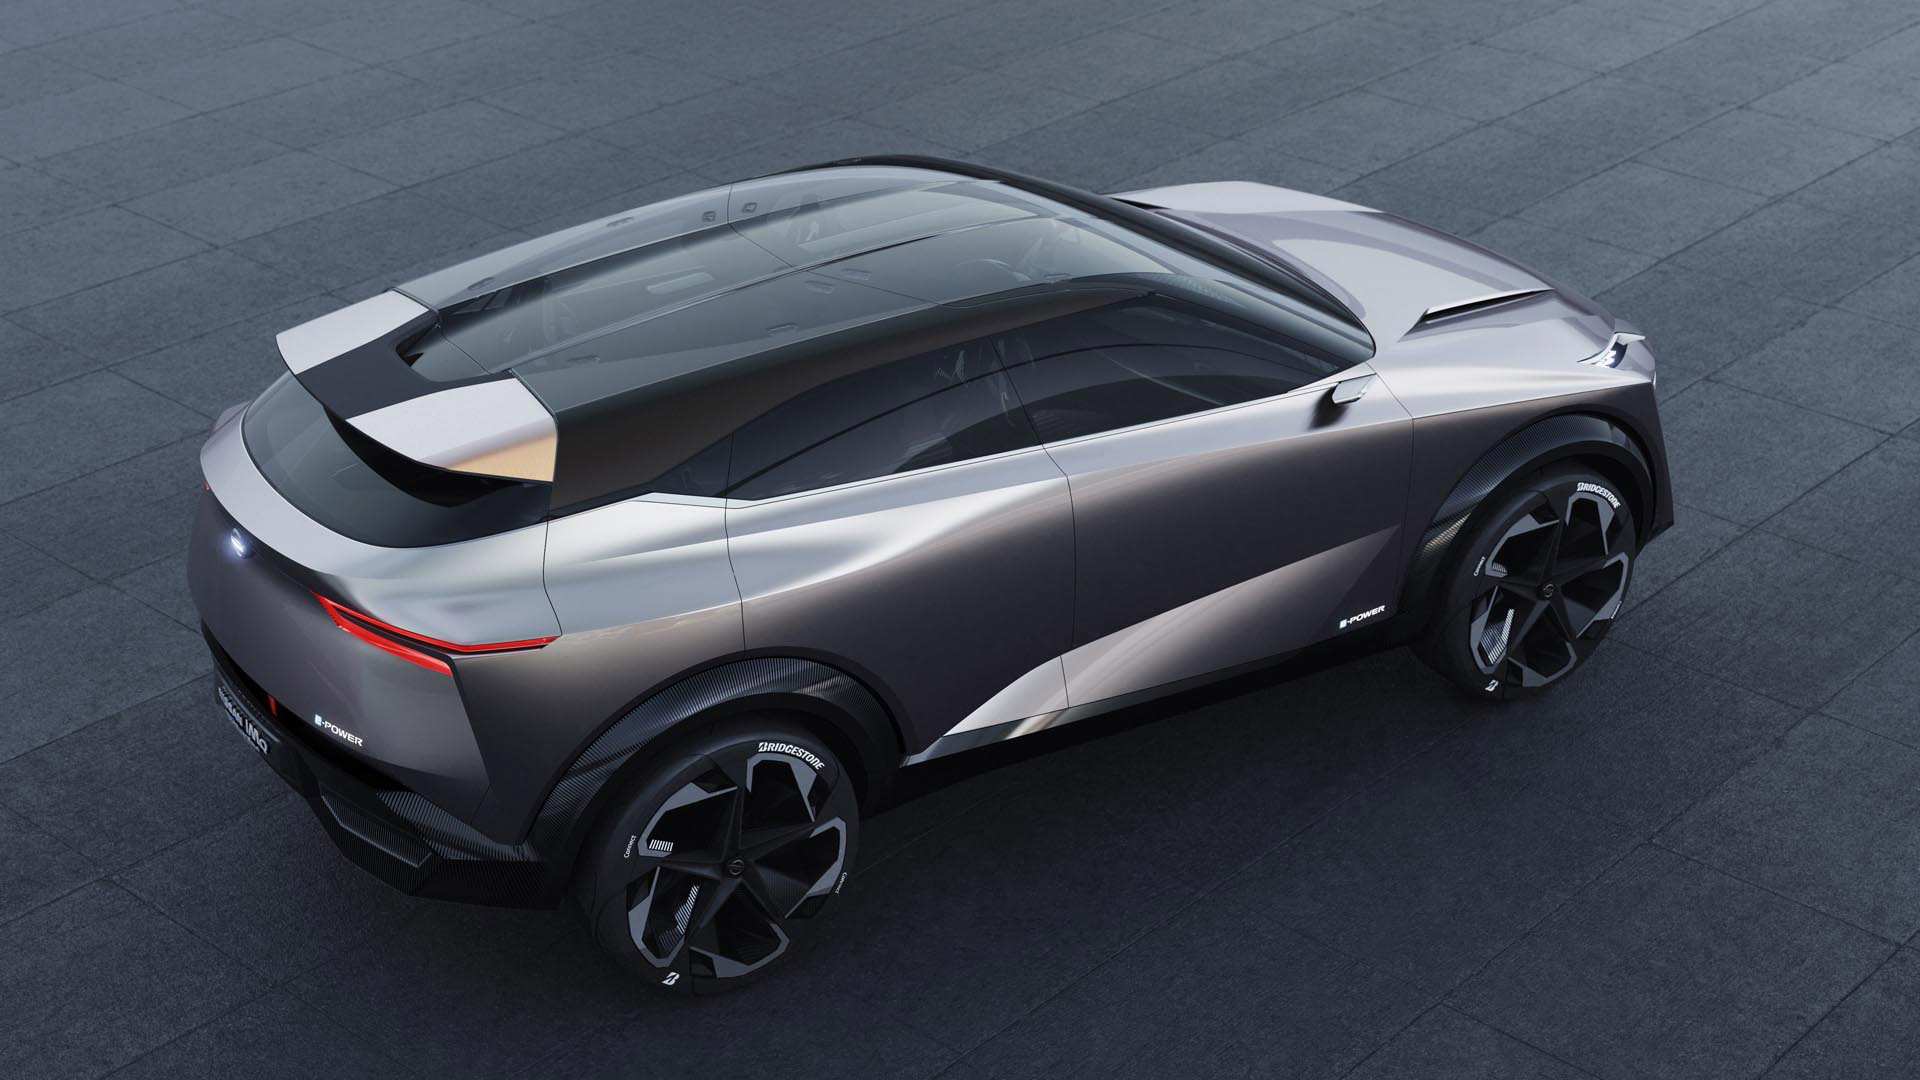 IMQ Concept car 10 source